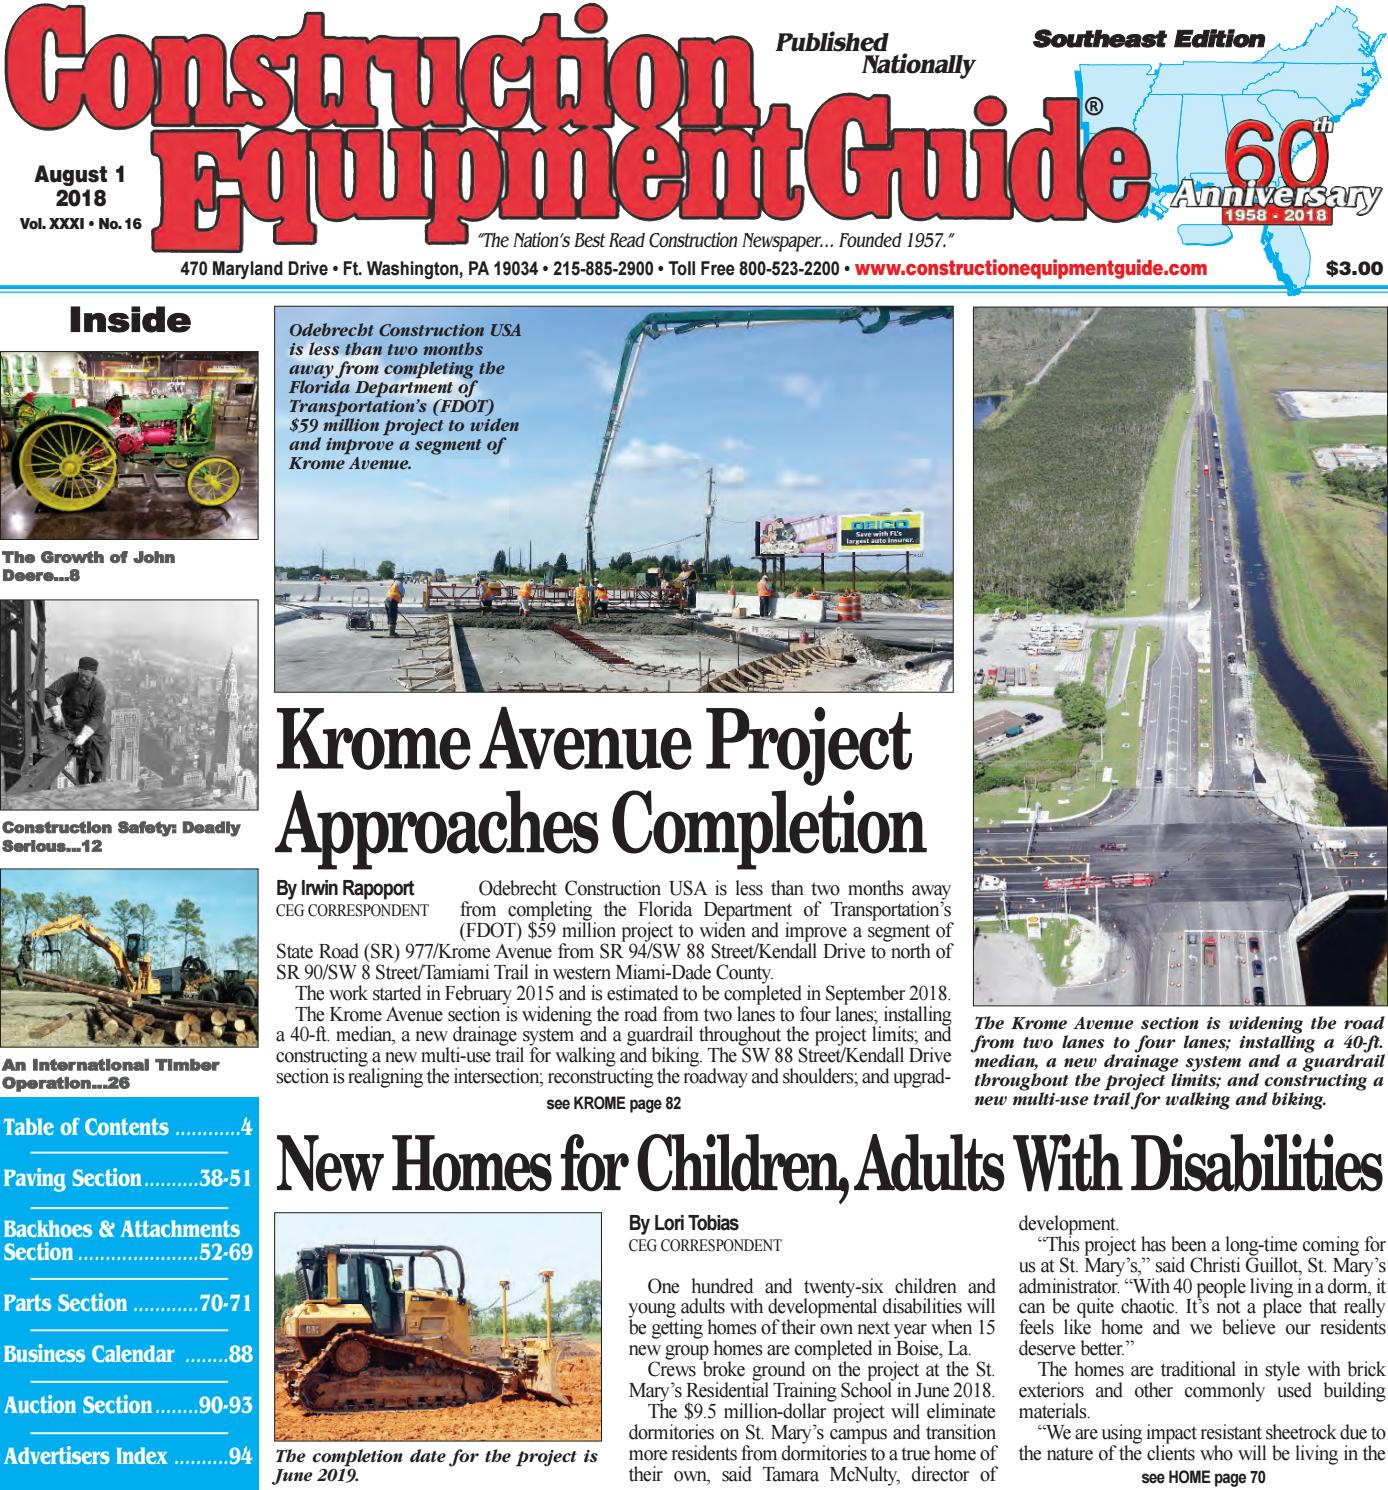 Southeast 16 August 1, 2018 by Construction Equipment Guide - issuu